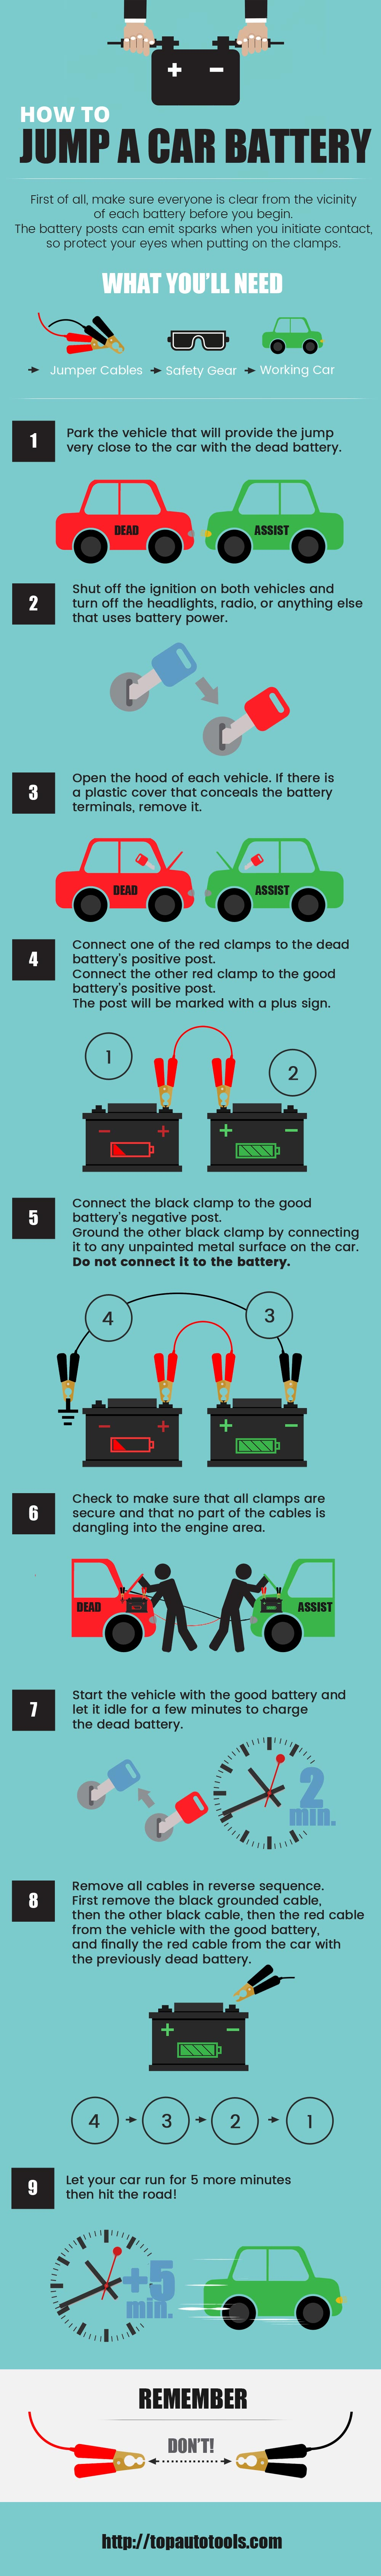 How to Jump a Car Battery by Top Auto Tools